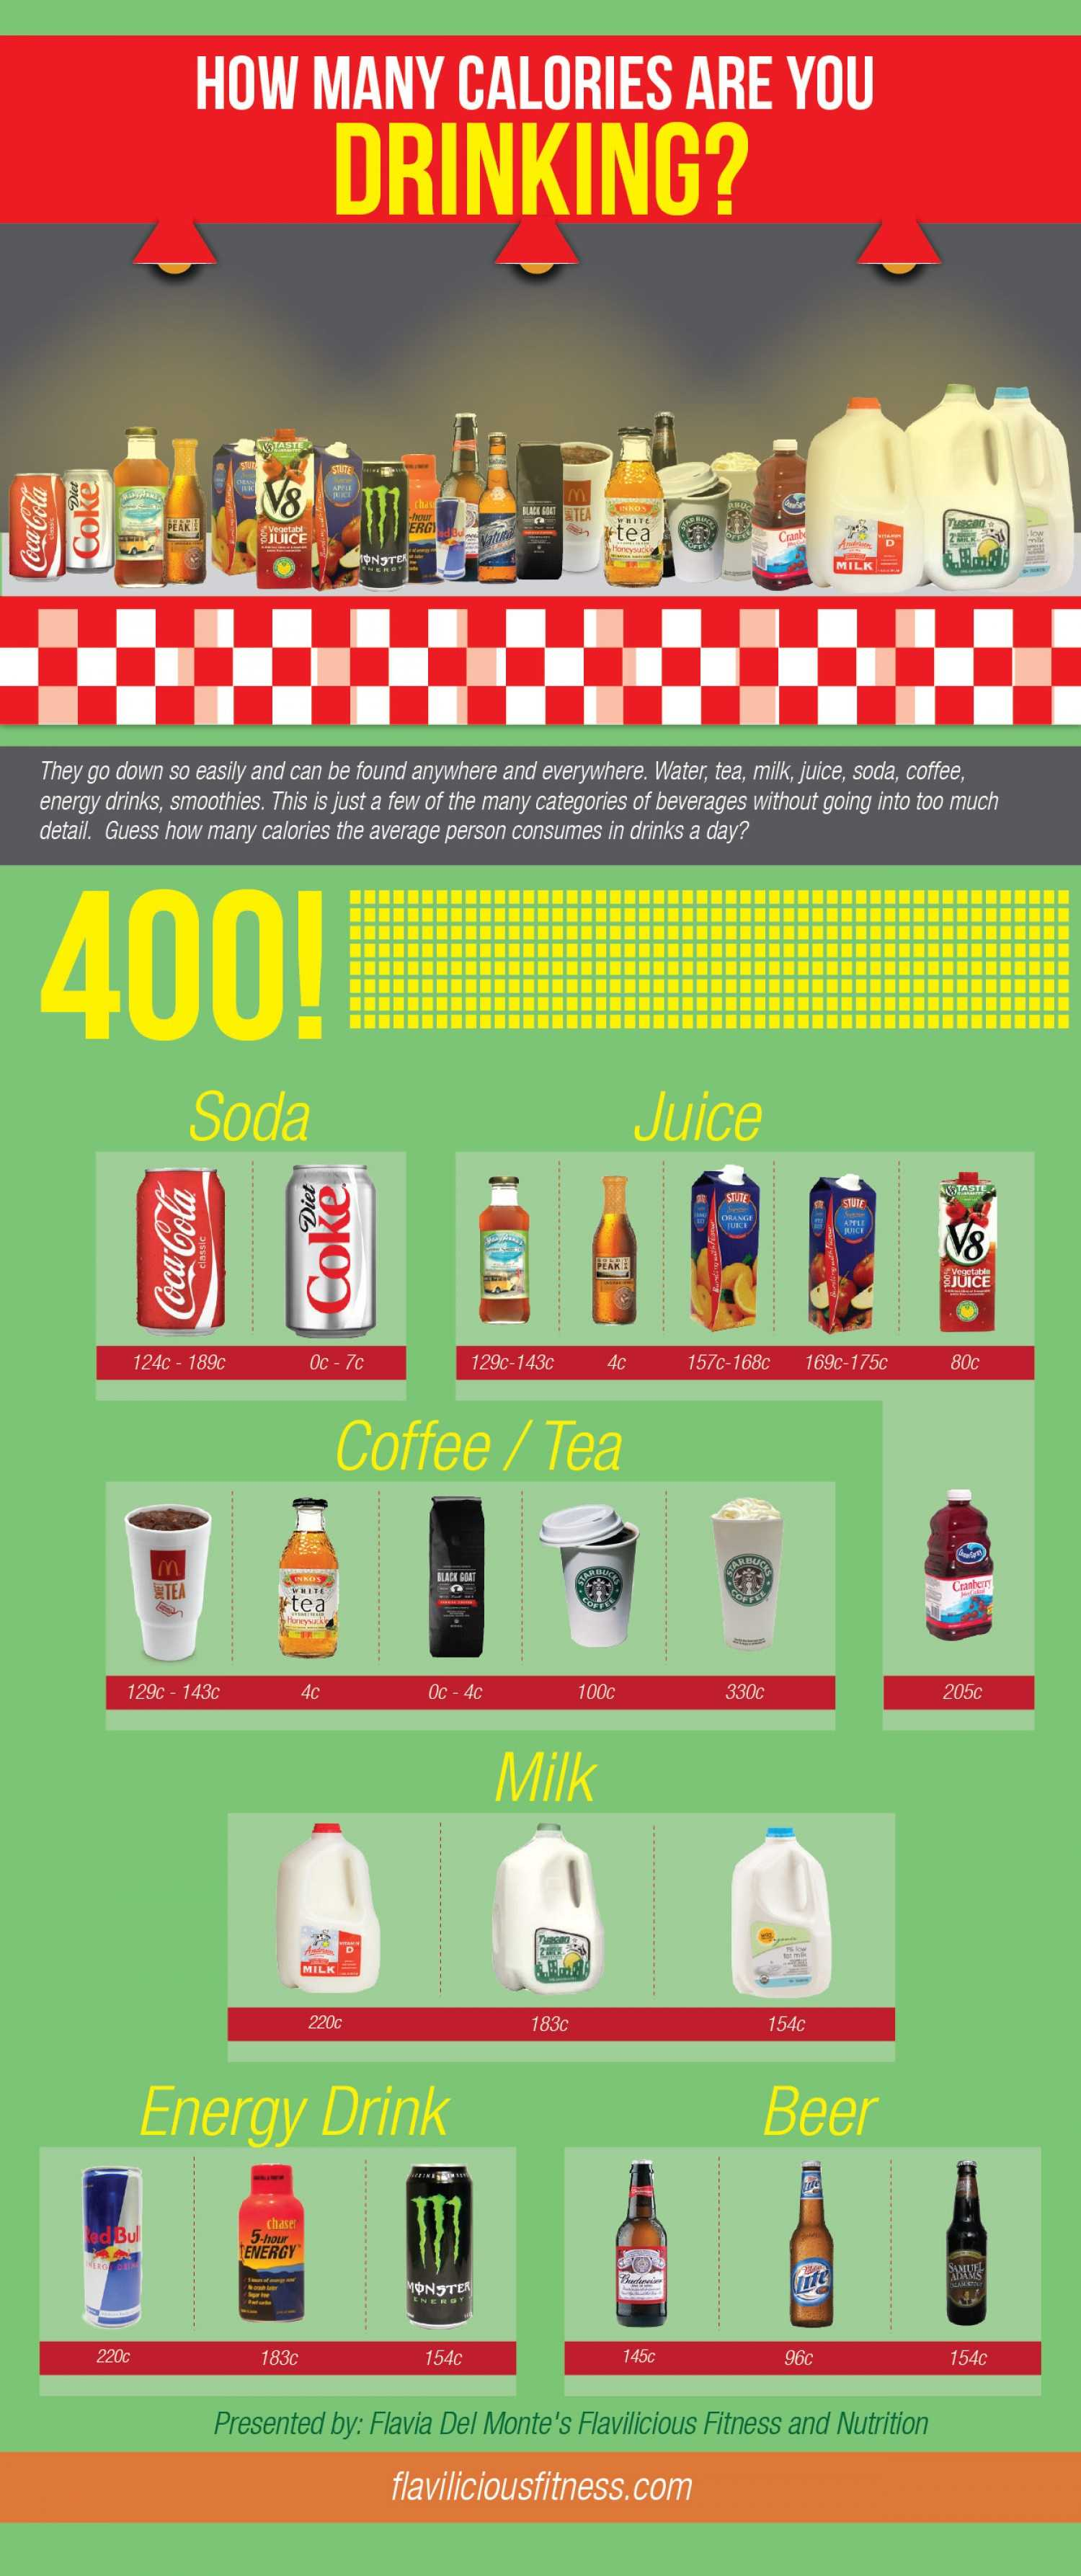 How Many Calories Are You Drinking